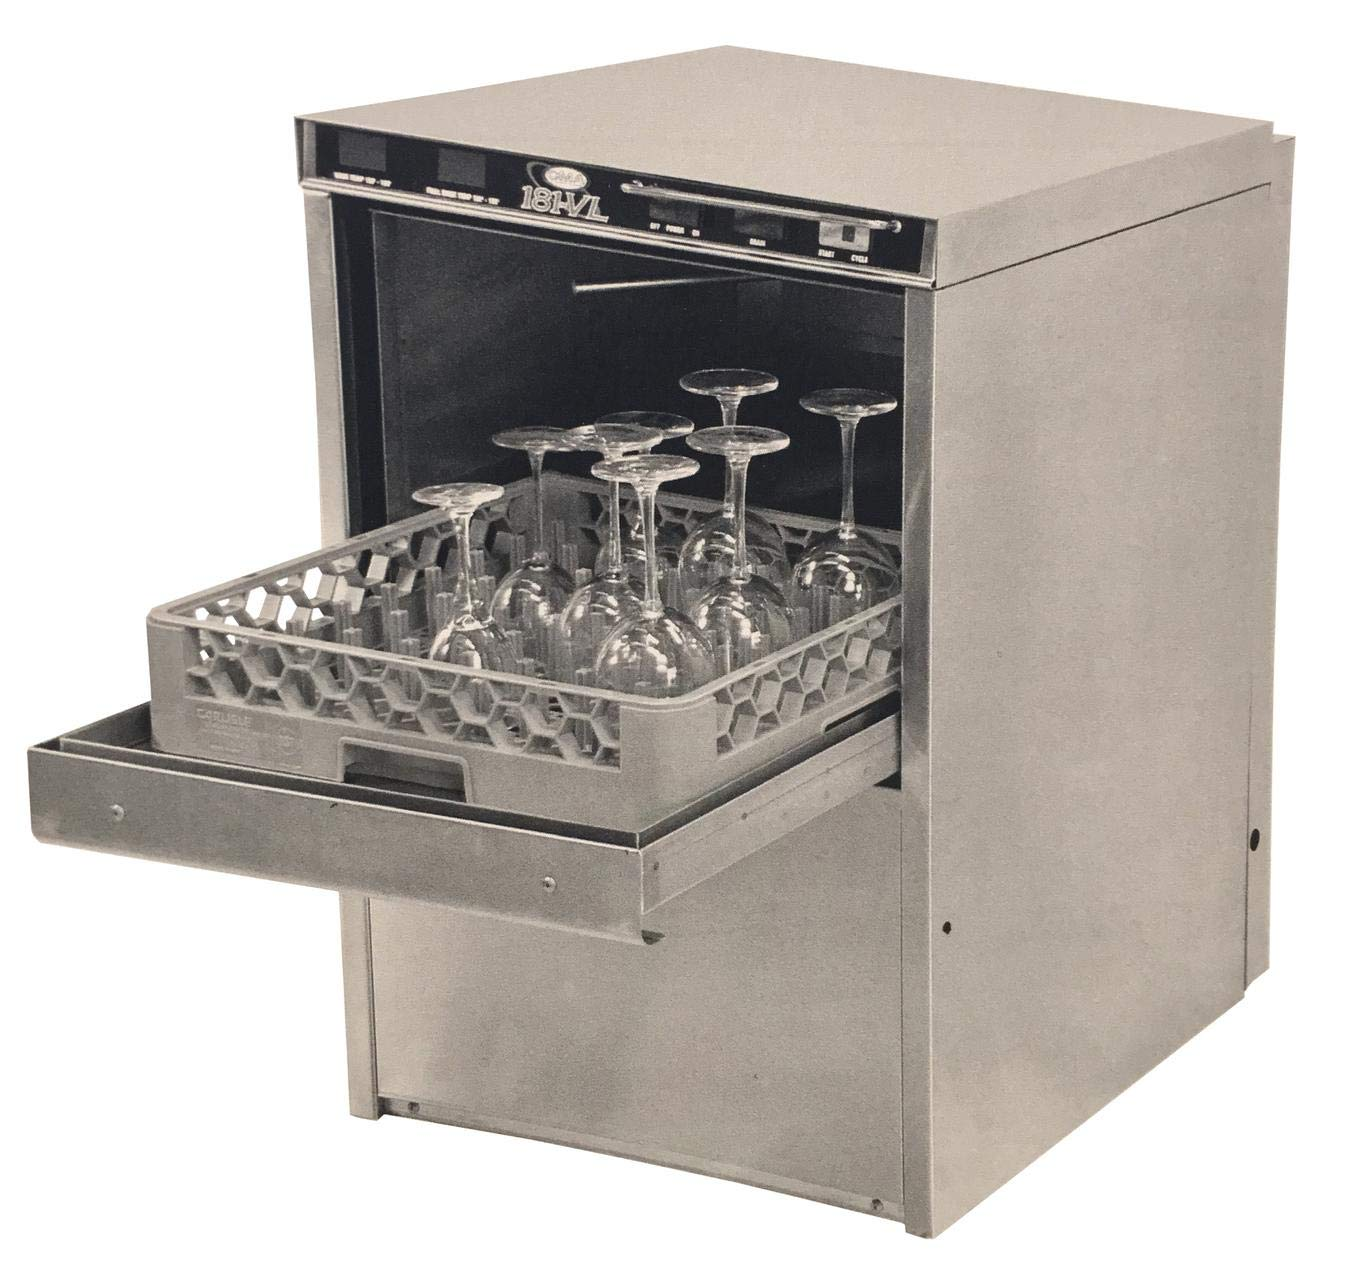 High Temp Undercounter Dishwasher with Heat Recovery